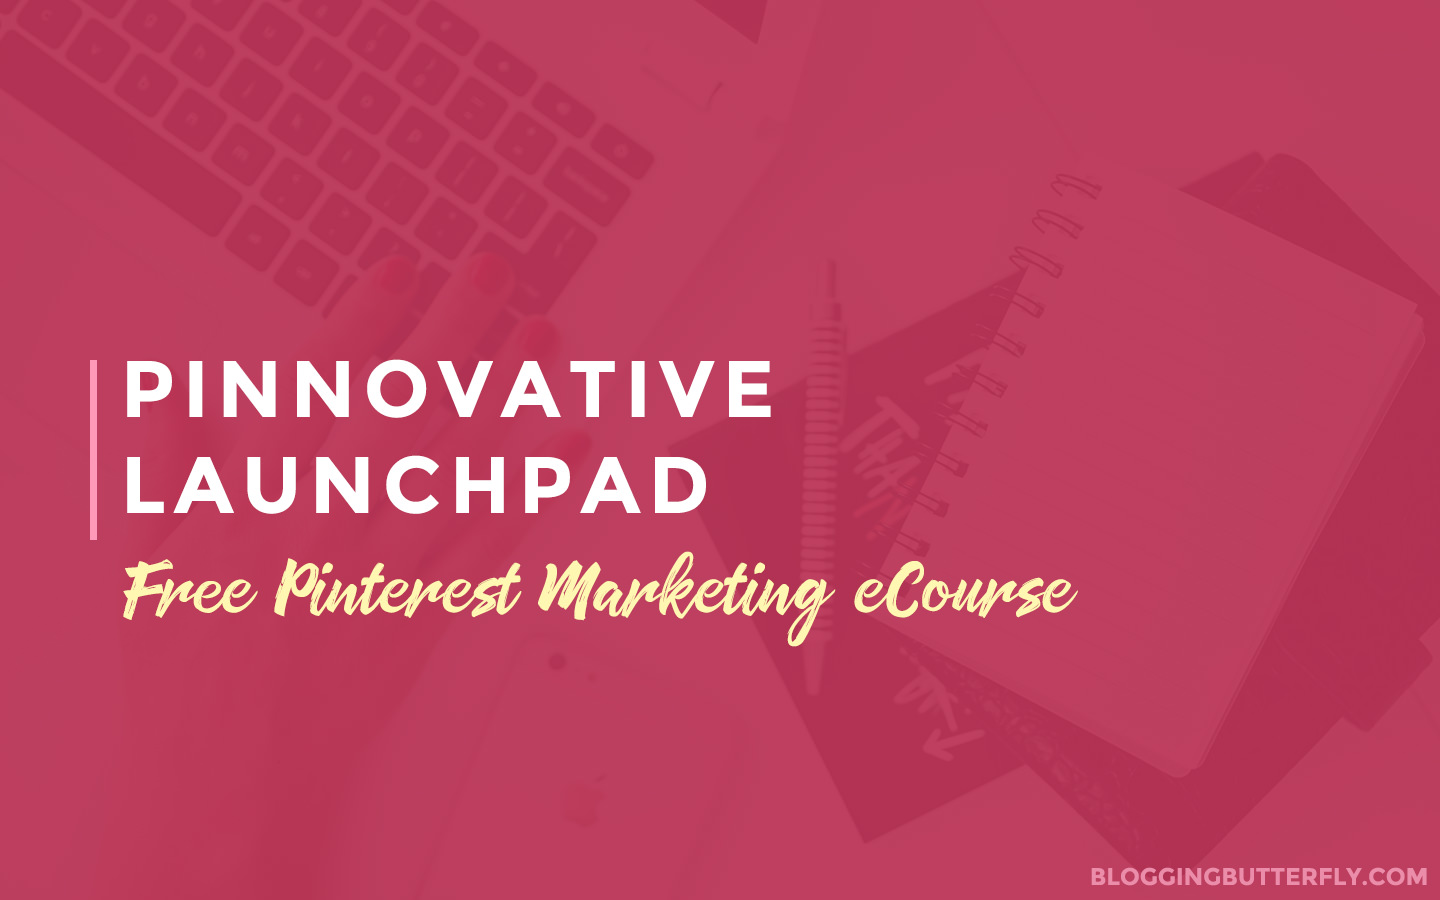 Free Pinterest Marketing Course